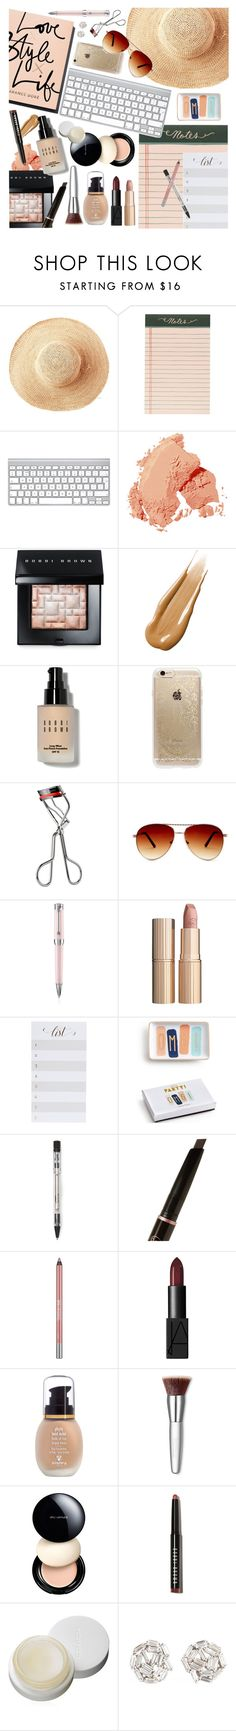 """""""DeskTop"""" by ashley-rebecca ❤ liked on Polyvore featuring beauty, Garance Doré, Toast, Rifle Paper Co, Bobbi Brown Cosmetics, Hourglass Cosmetics, Kevyn Aucoin, Steve Madden, Montegrappa and Charlotte Tilbury"""